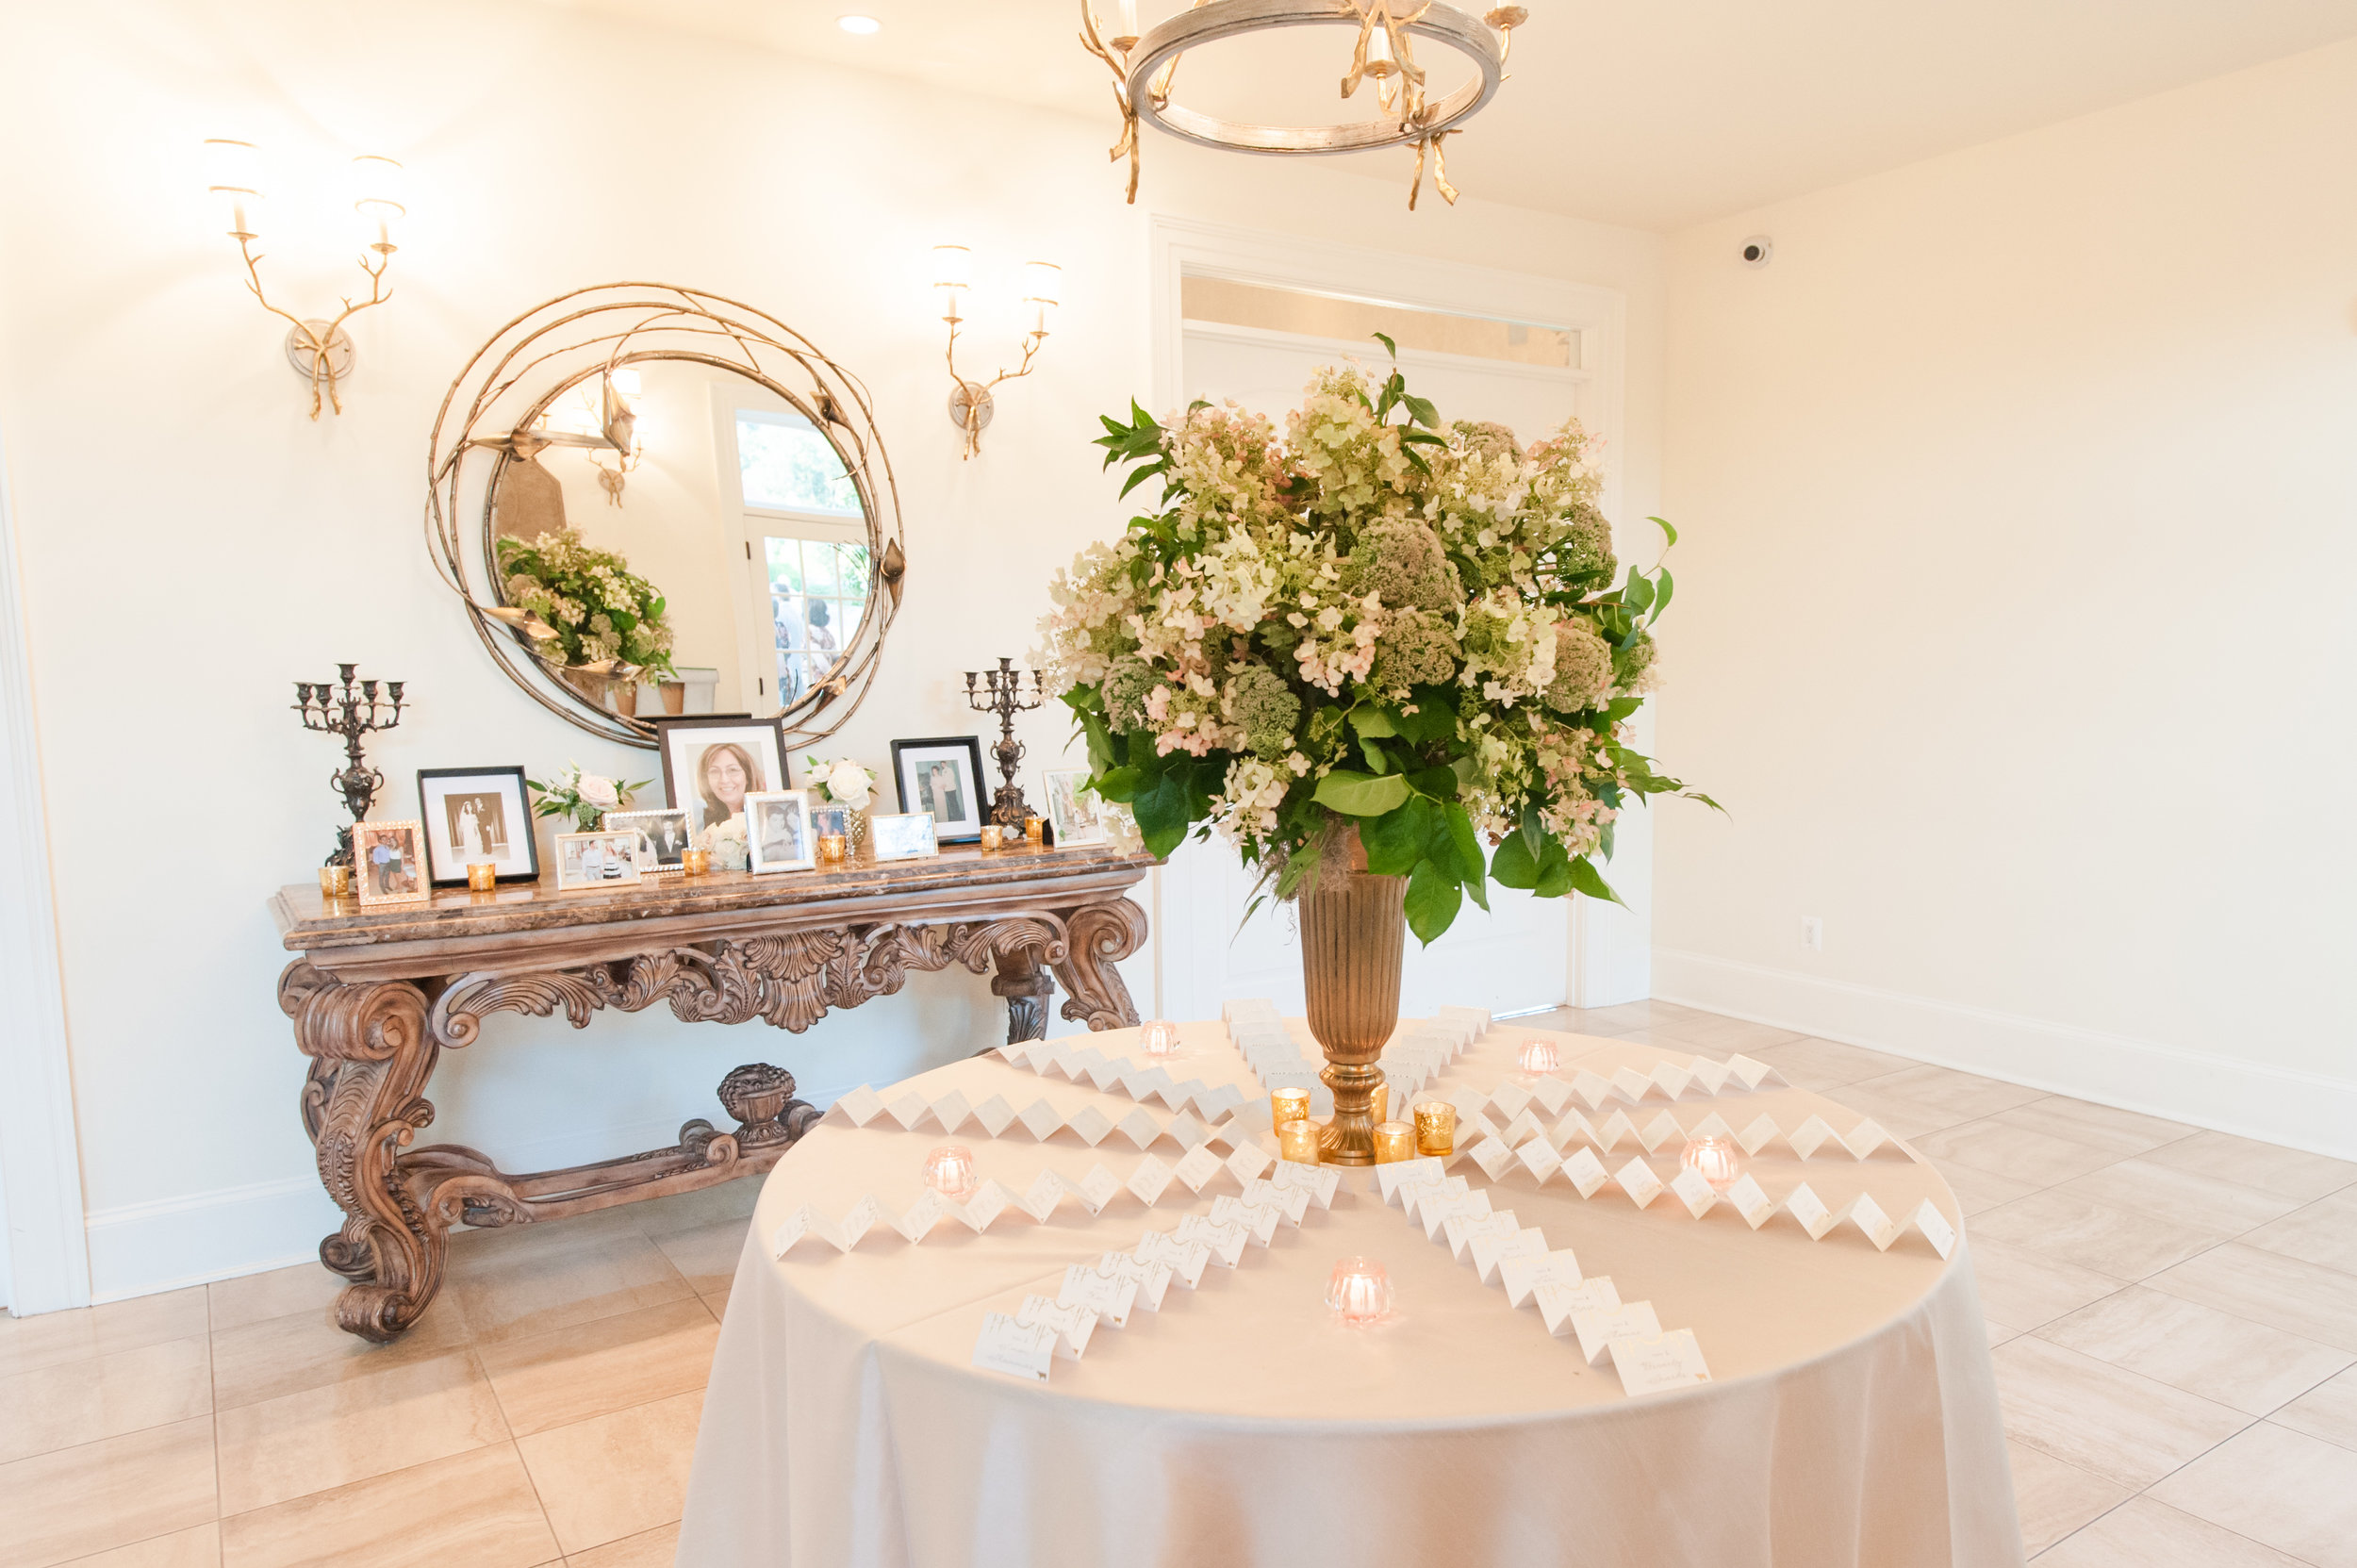 MORAIS VINEYARDS WEDDING A BEYOUTIFUL FETE EVENTS & DESIGN  - VIRGINIA AND DC WEDDING PLANNER 15.jpg